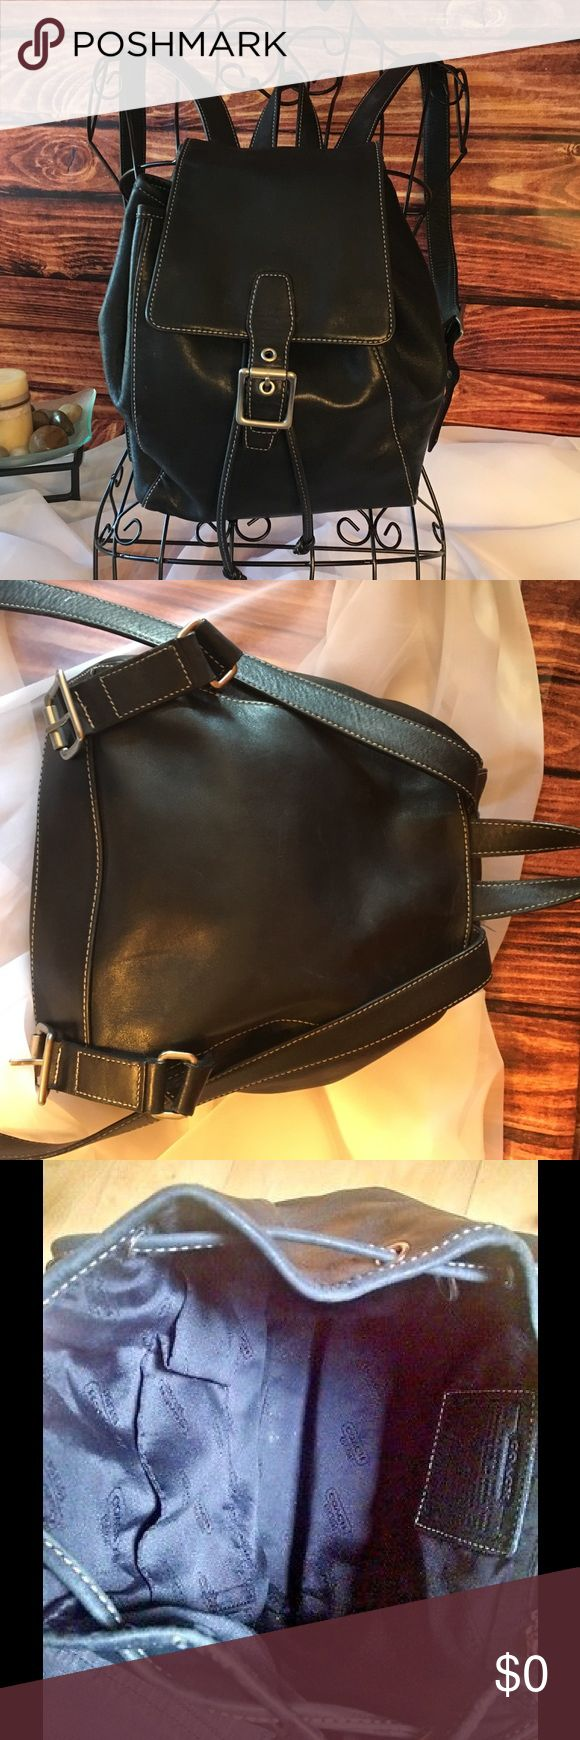 """Coach Legacy Leather Backpack in Black Style No 9569 in EXCELLENT condition. Soft & Supple Black Leather w/ White Contrast Stitching,  Front Buckle Flap with Hidden Magnetic & Drawstring Closure, Silver/Nickel Hardware, Fully Lined, Long Adjustable Back Straps, Coach dust bag included with purchase. Approx measurement: 8"""" (L) 10"""" (H) 4 1/2"""" (W) Coach Bags Backpacks"""